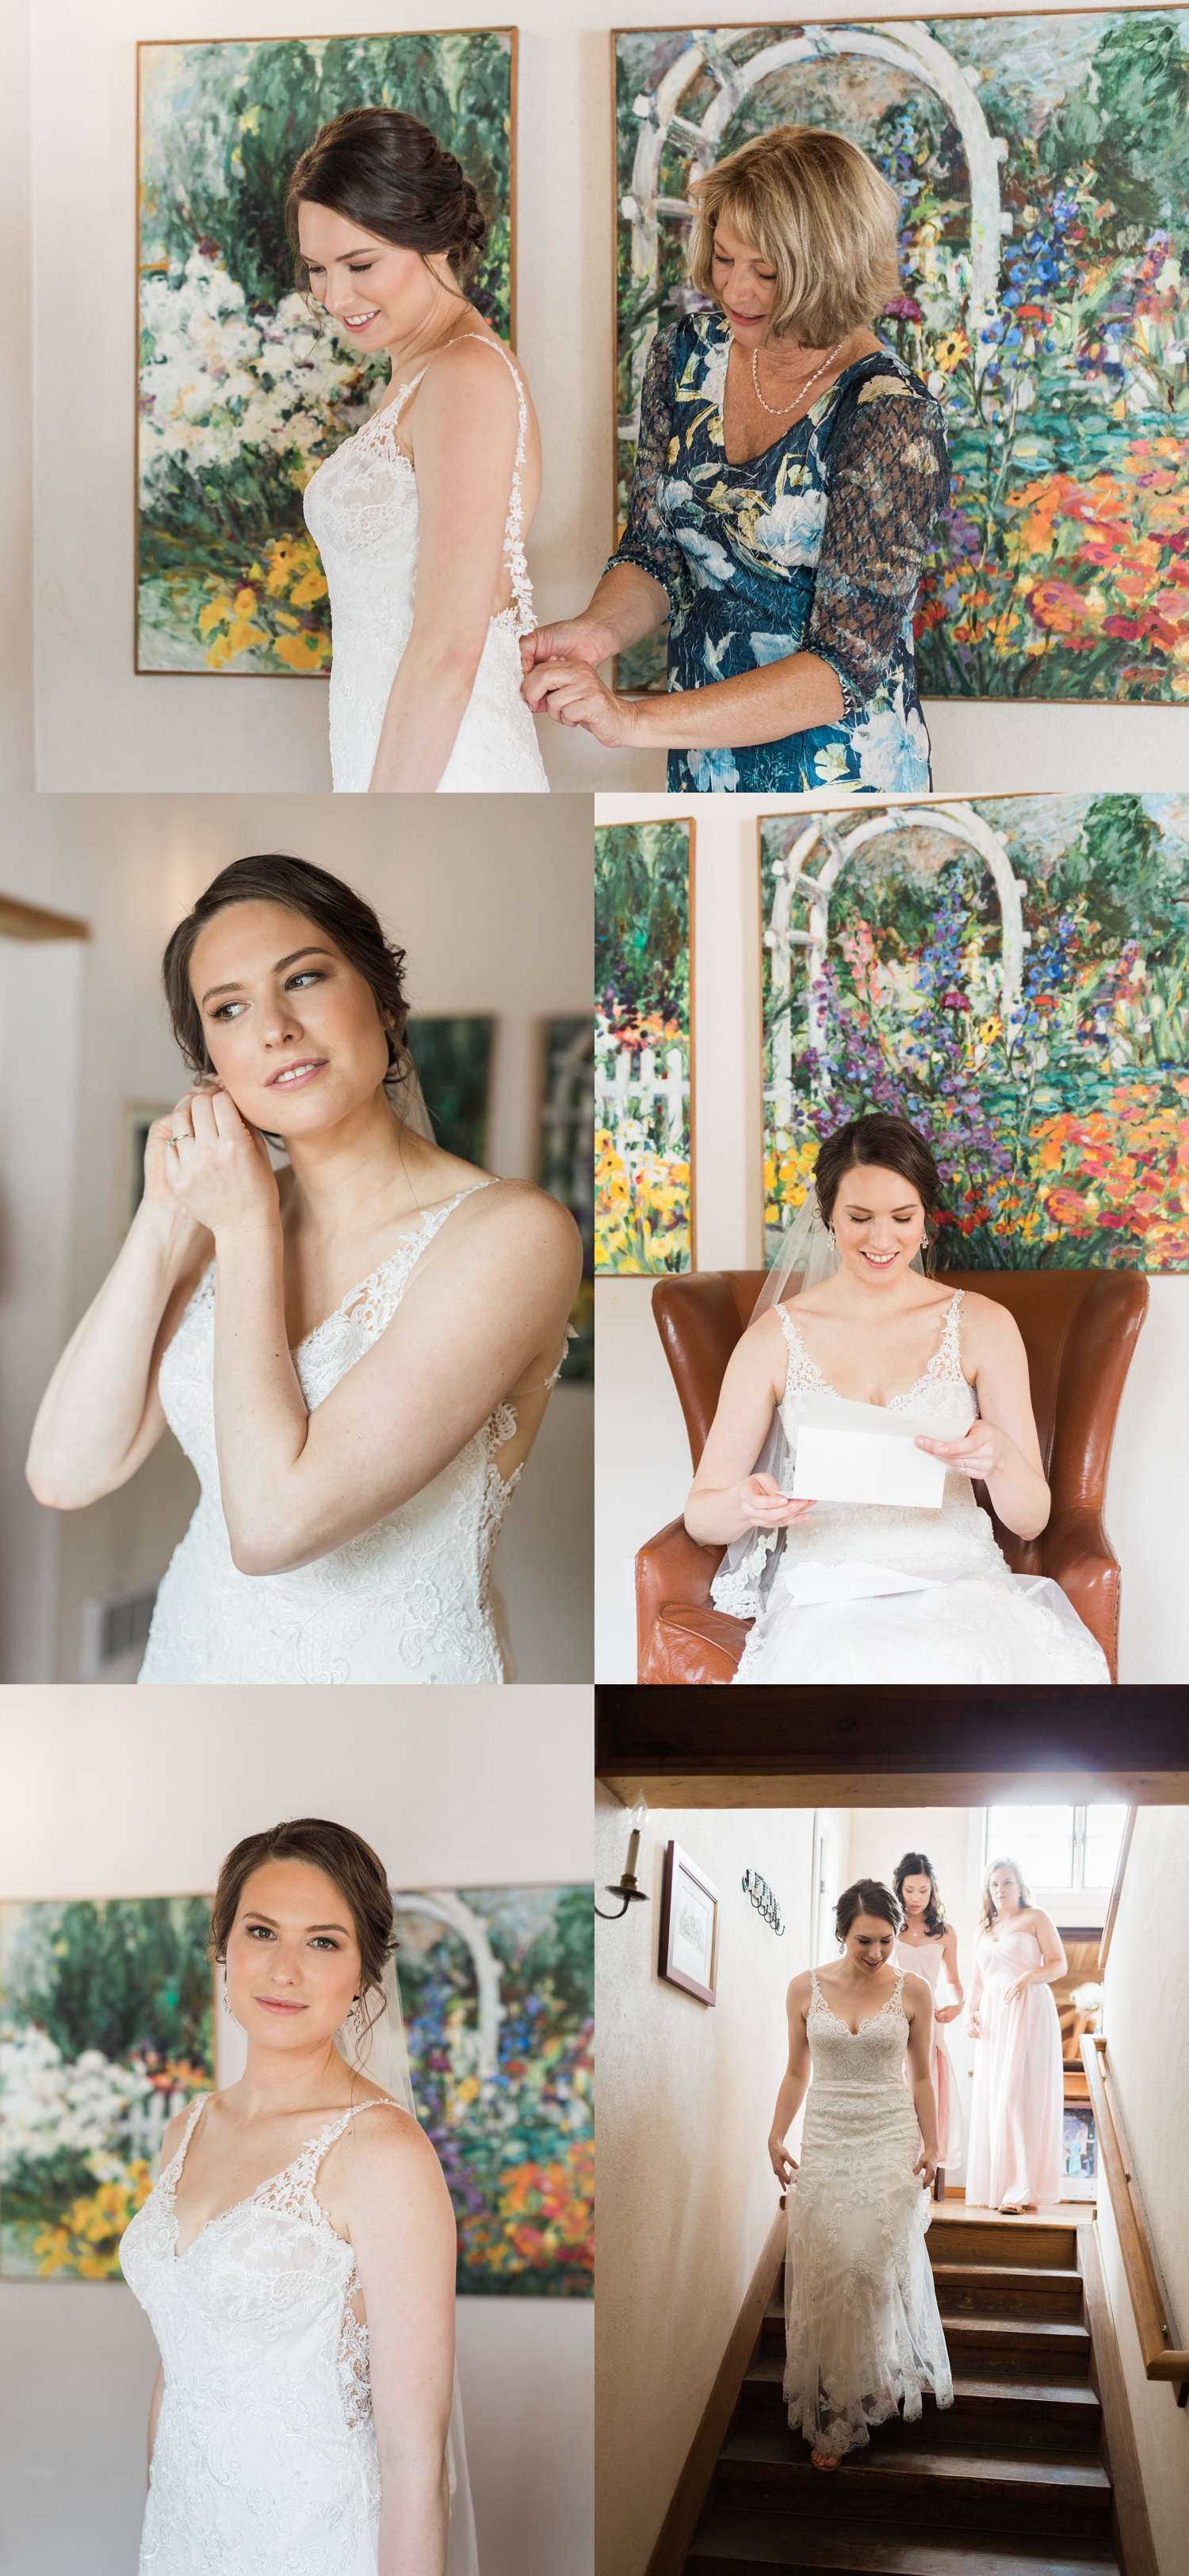 A bride gets ready for her wedding at Chateau Lill in Woodinville, a wedding venue near Seattle, WA. | Joanna Monger Photography | Seattle & Snohomish Photographer